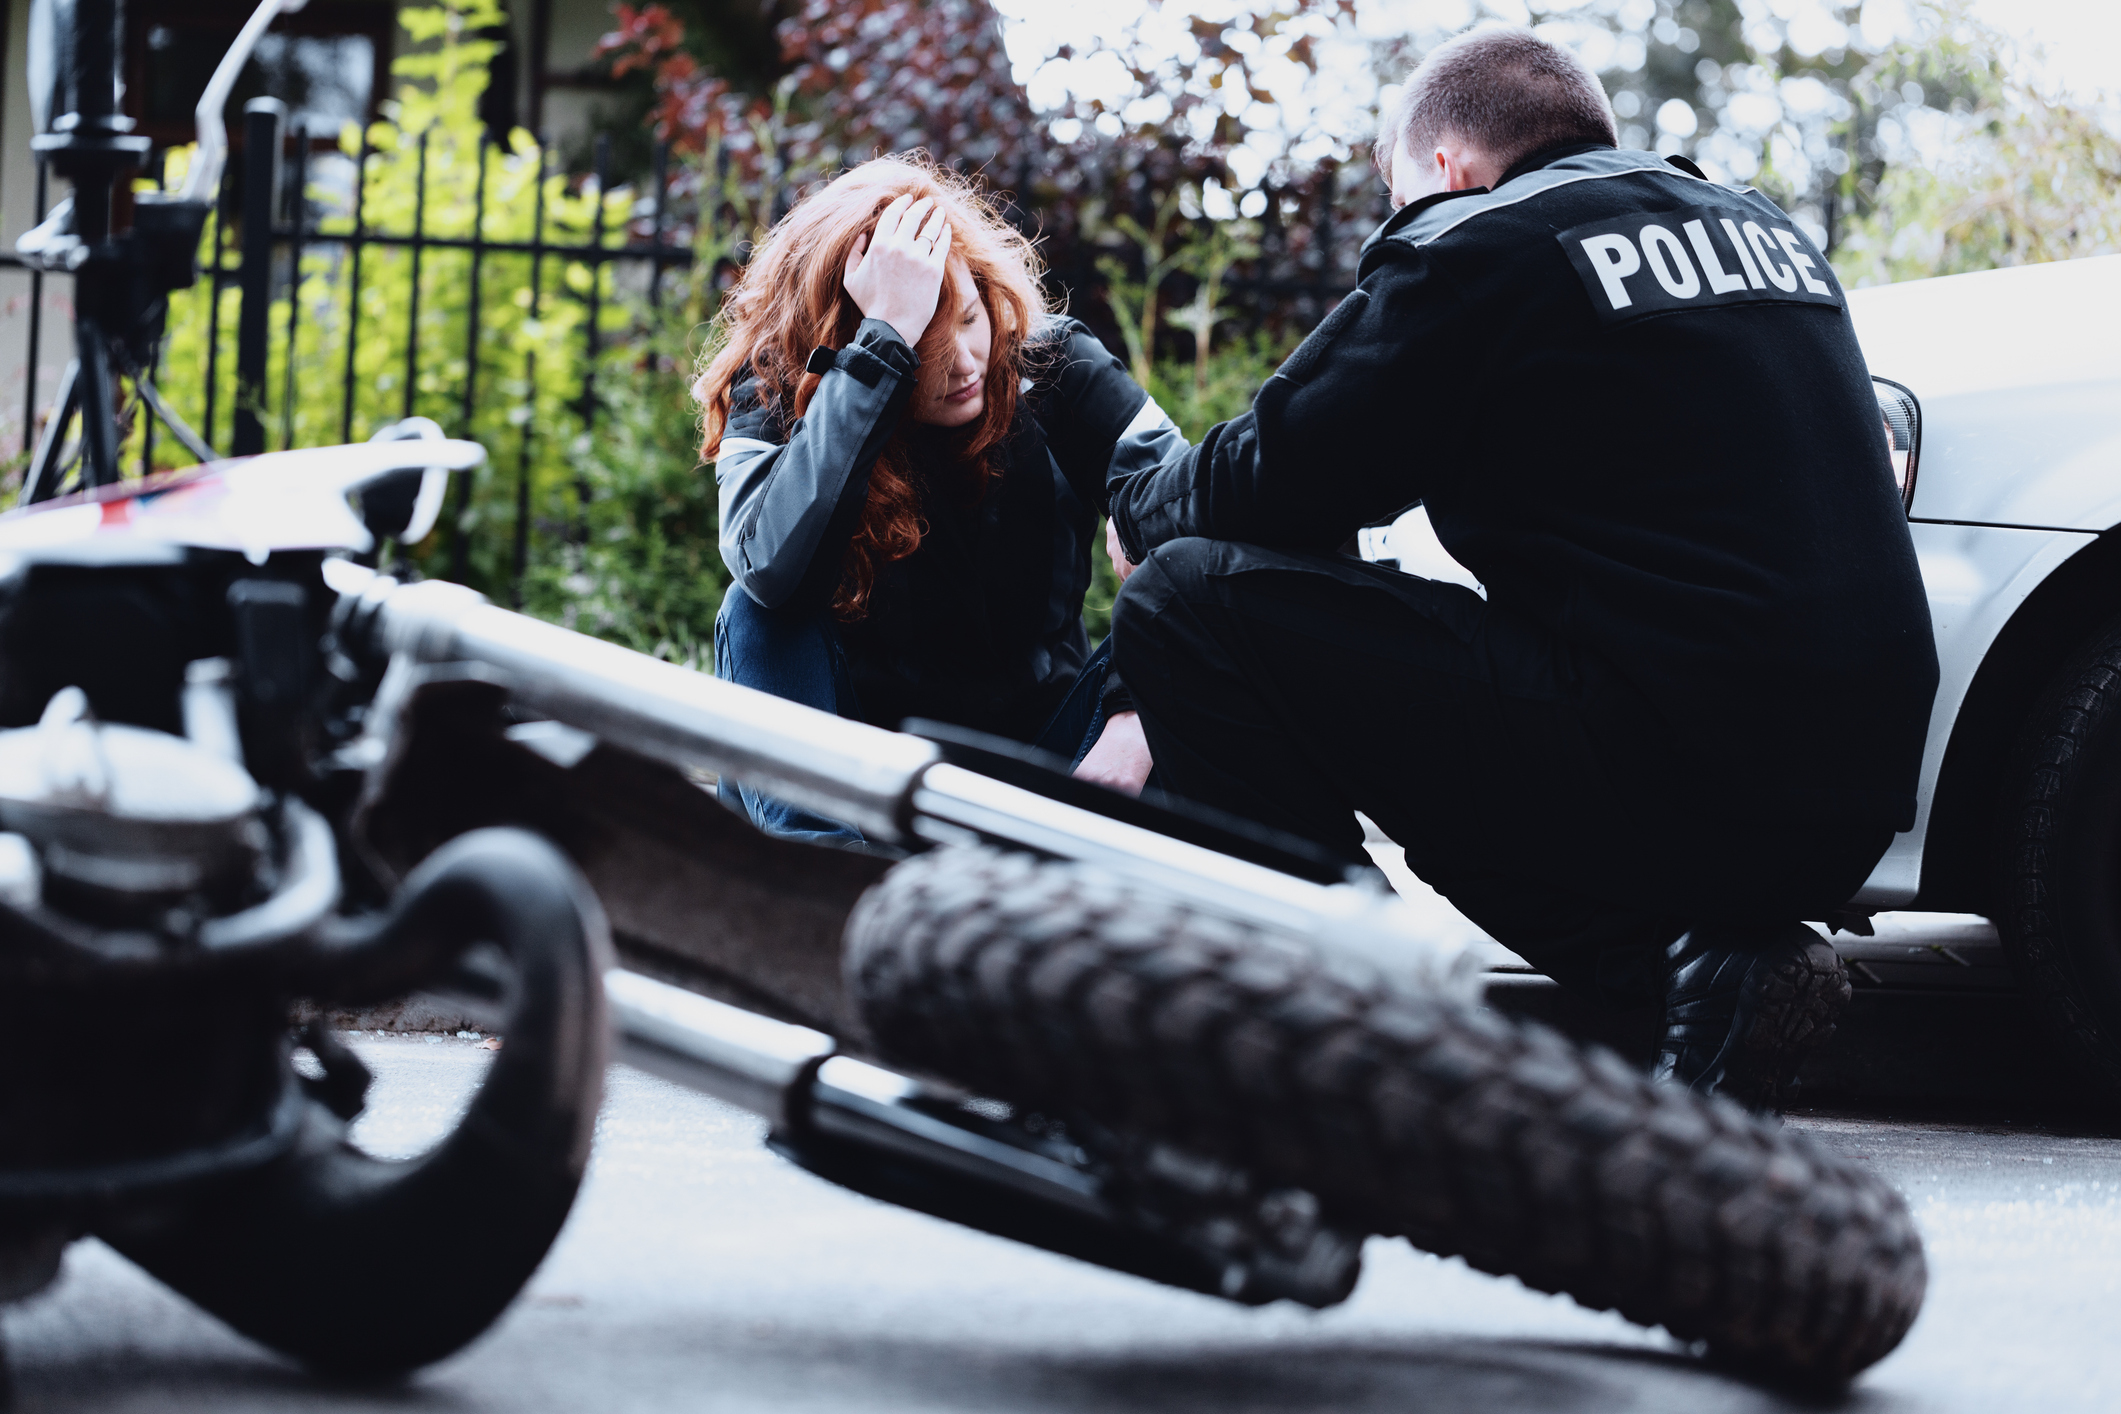 police interviewing a victim of a motorcycle accident